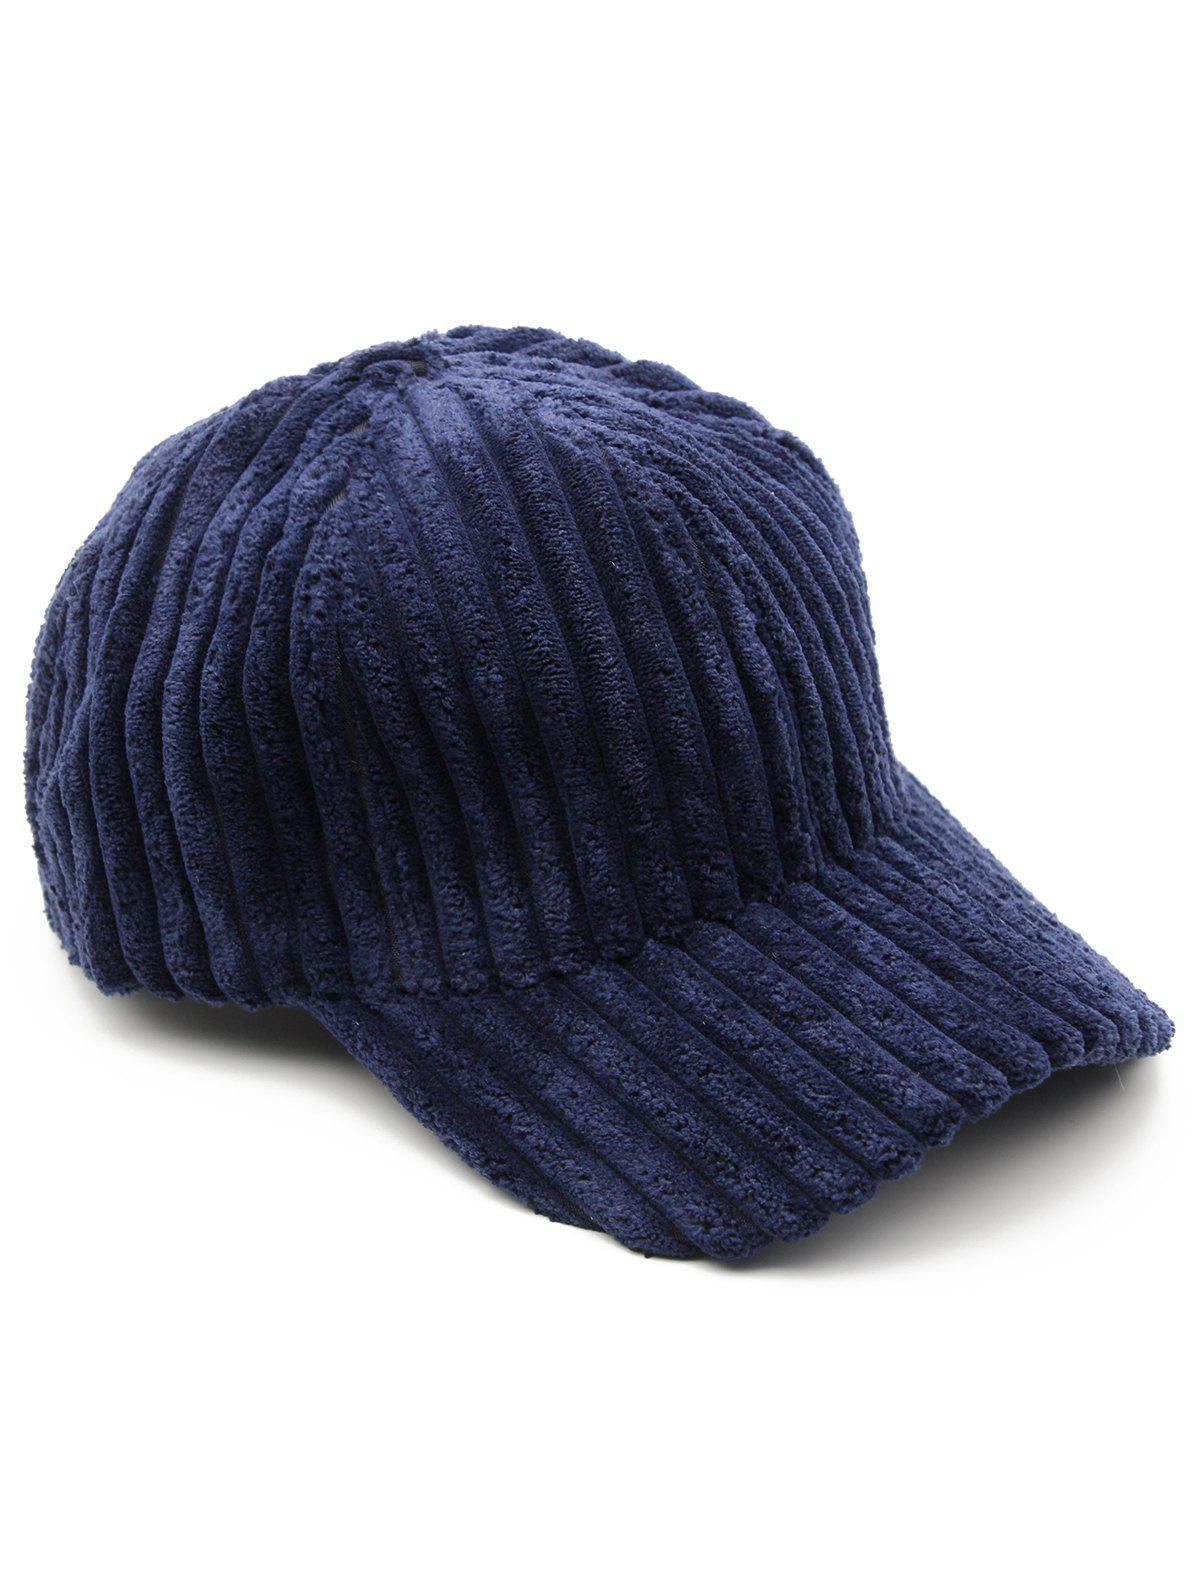 Cheap Thick Striped Adjustable Baseball Cap